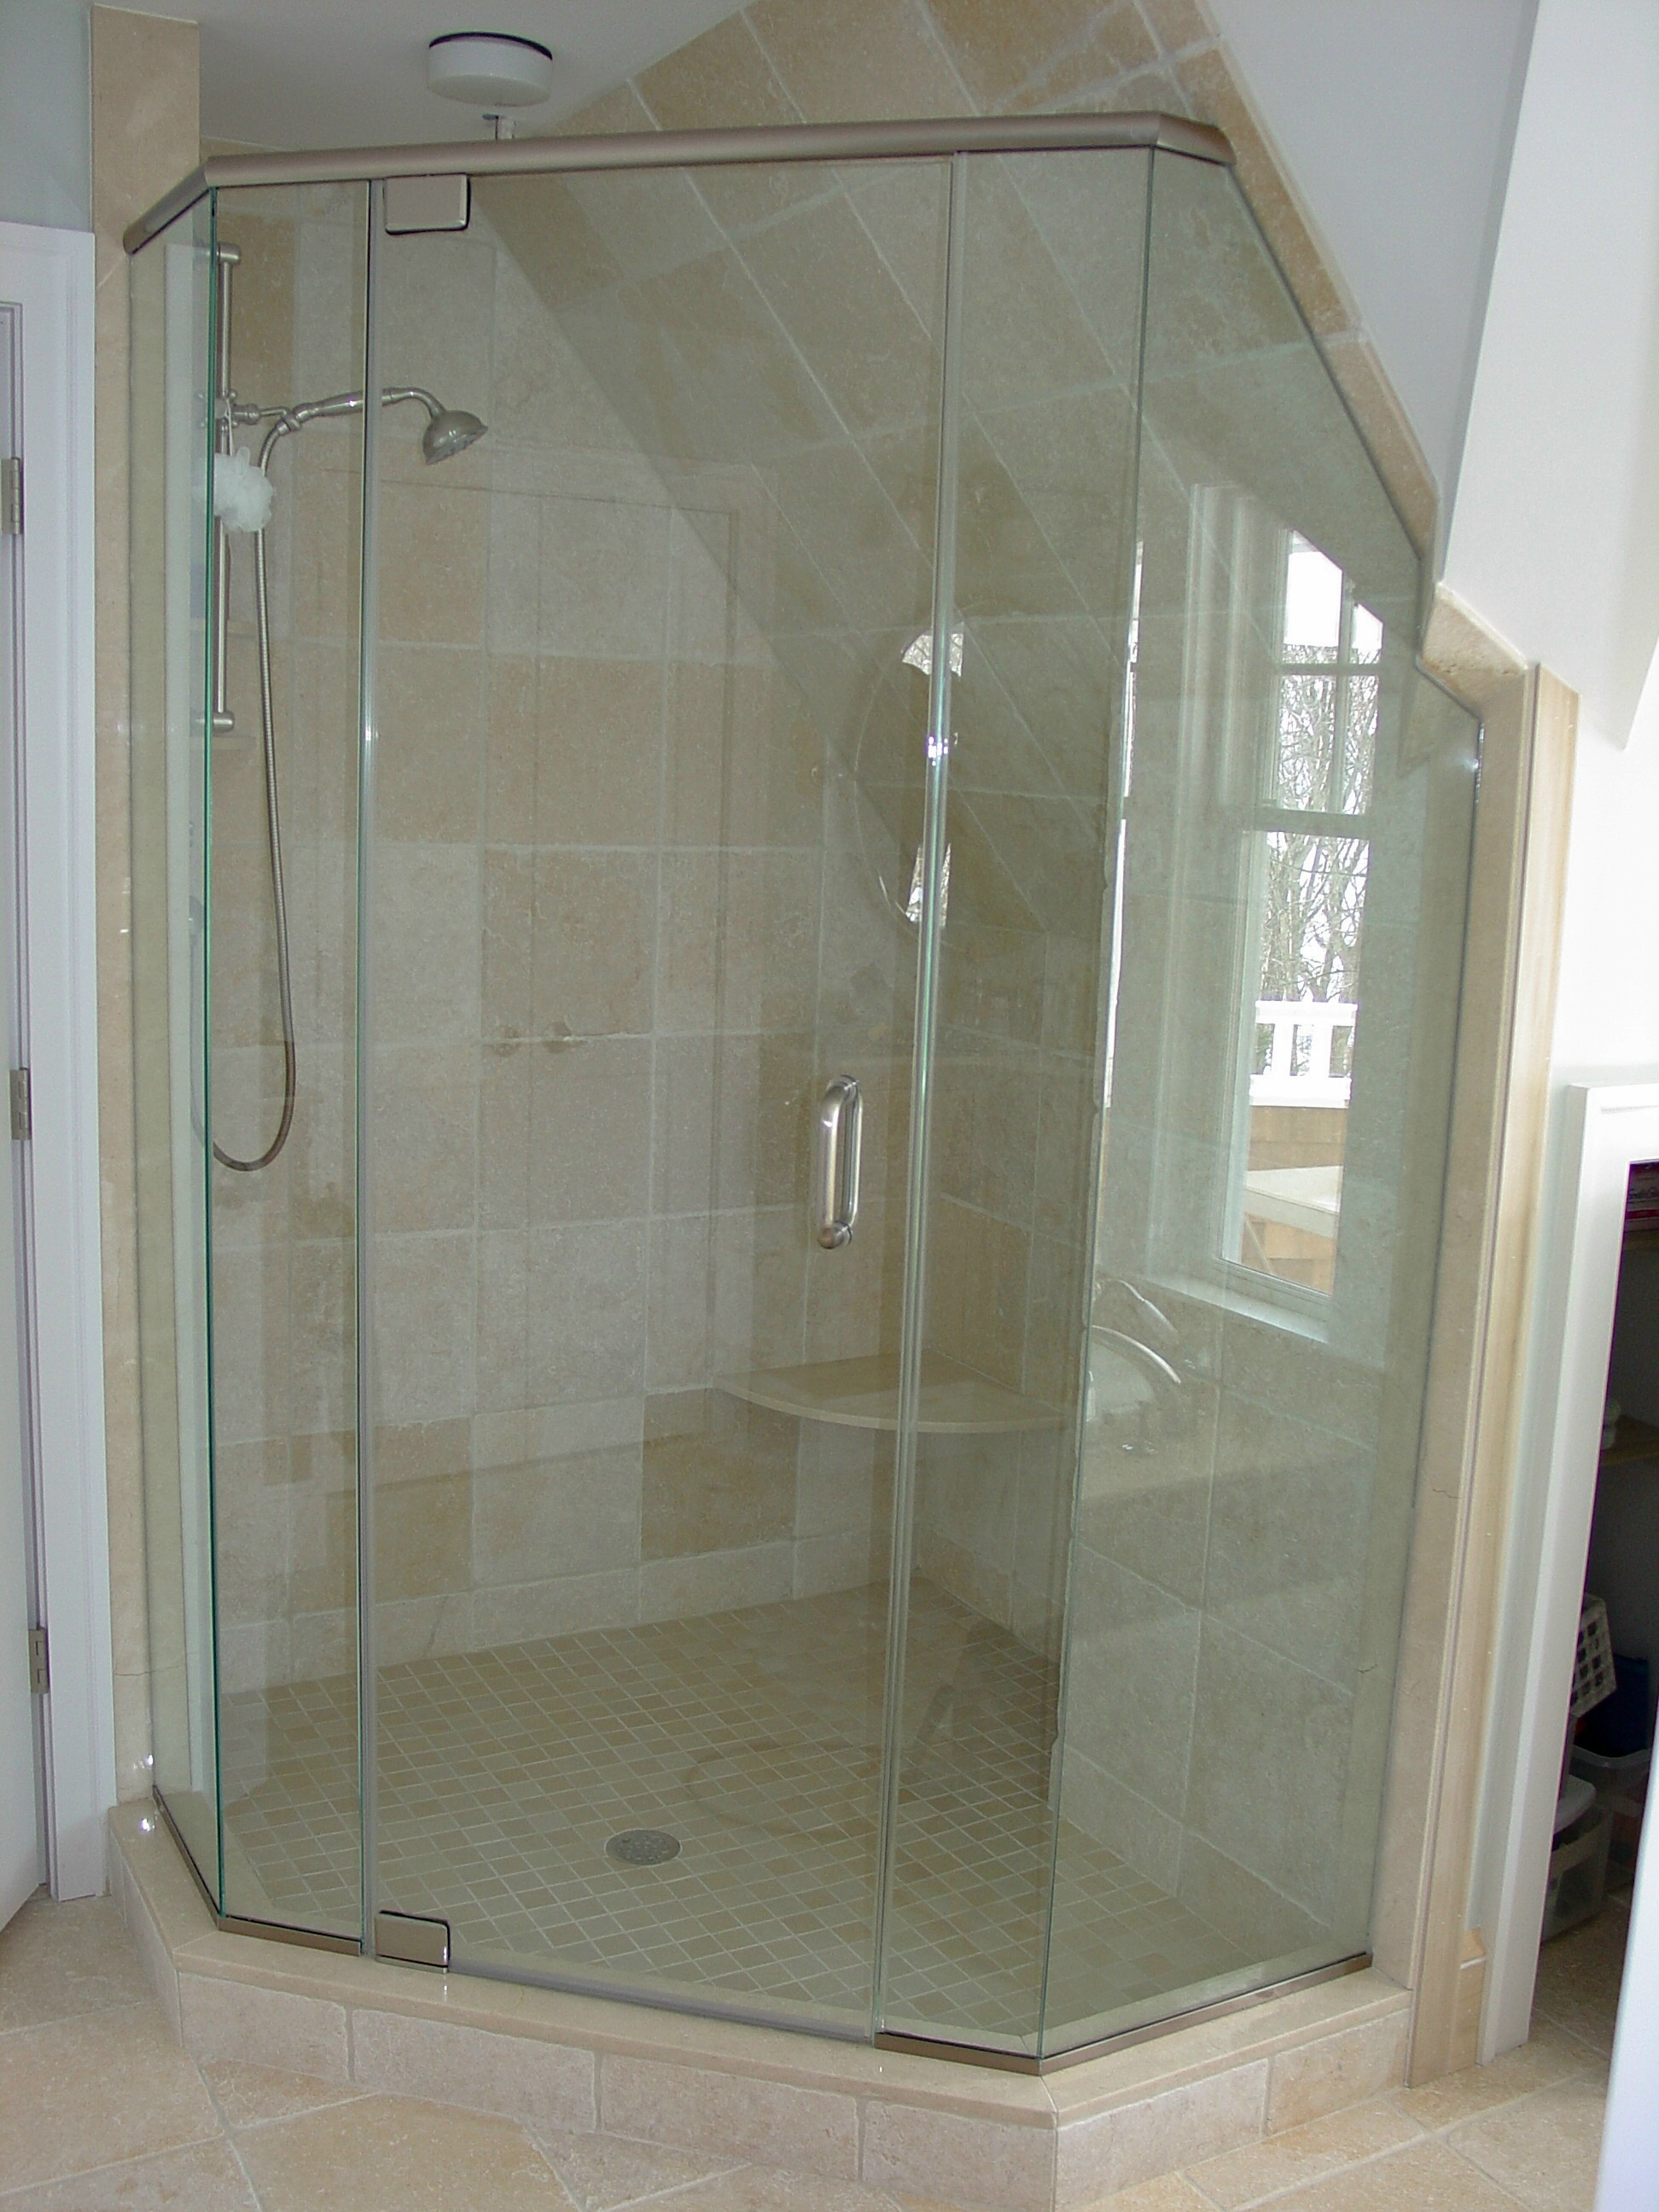 & Heavy Shower Doors